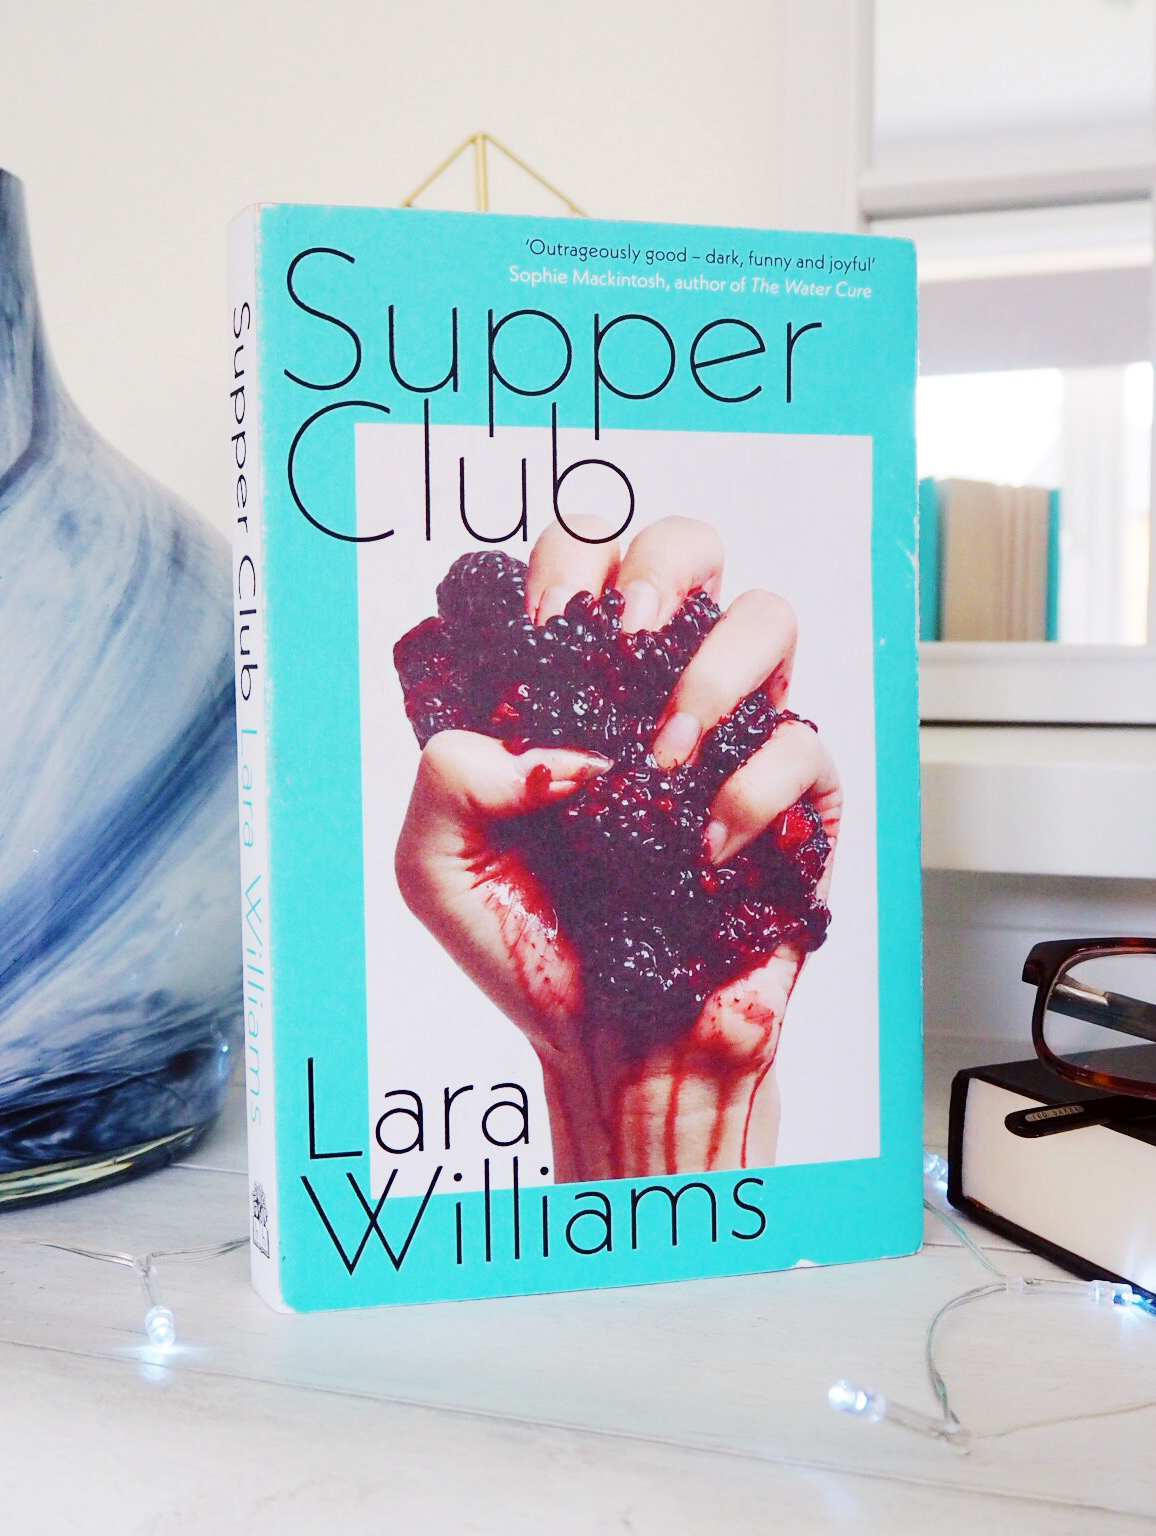 Supper Club by Lara Williams - Empowering New Books By Women For Women